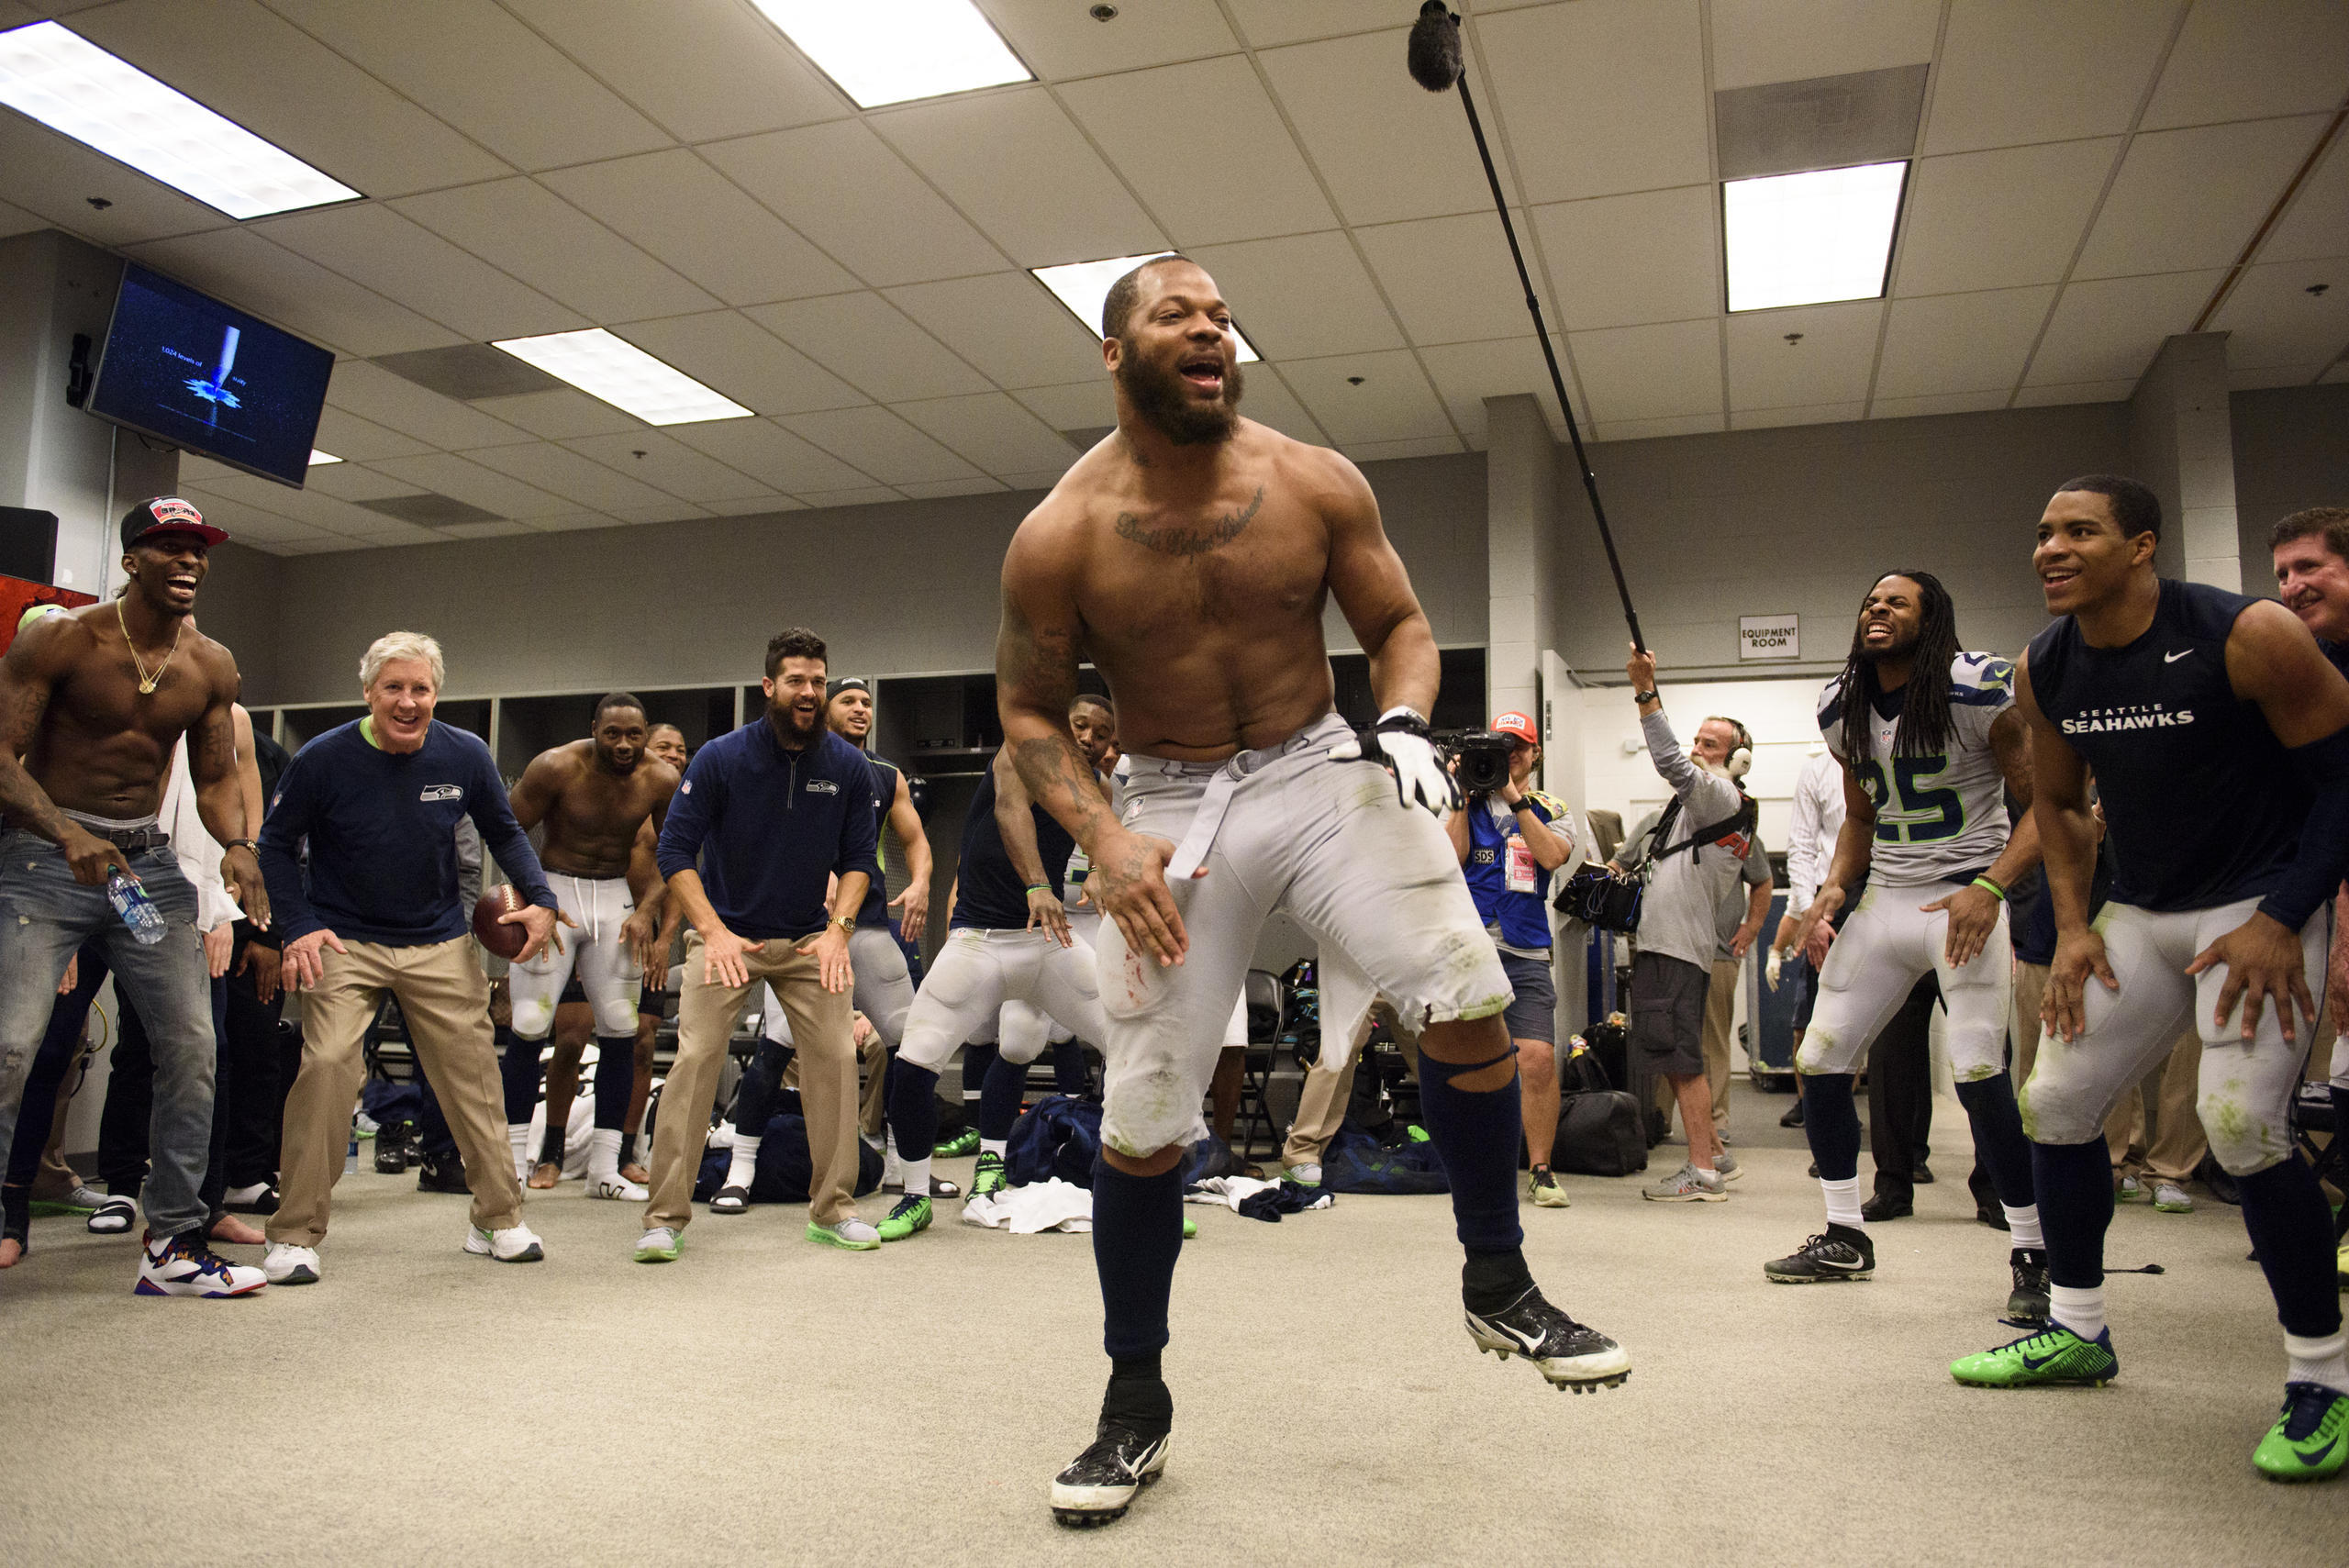 Defensive end Michael Bennett leads the team in the now-traditional post-victory dance in the locker room